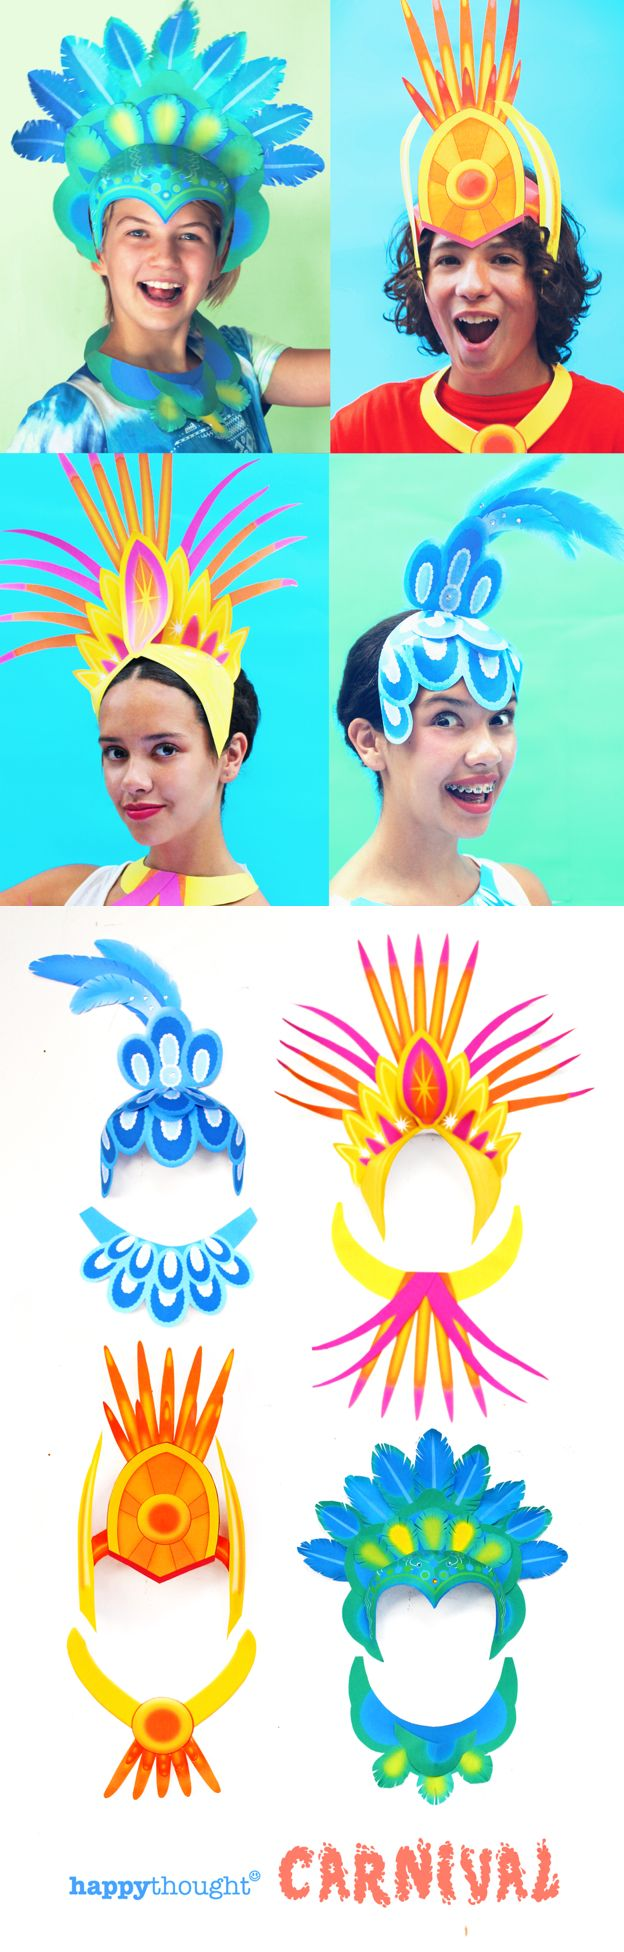 printable carnival headpiece template  easy and fun to